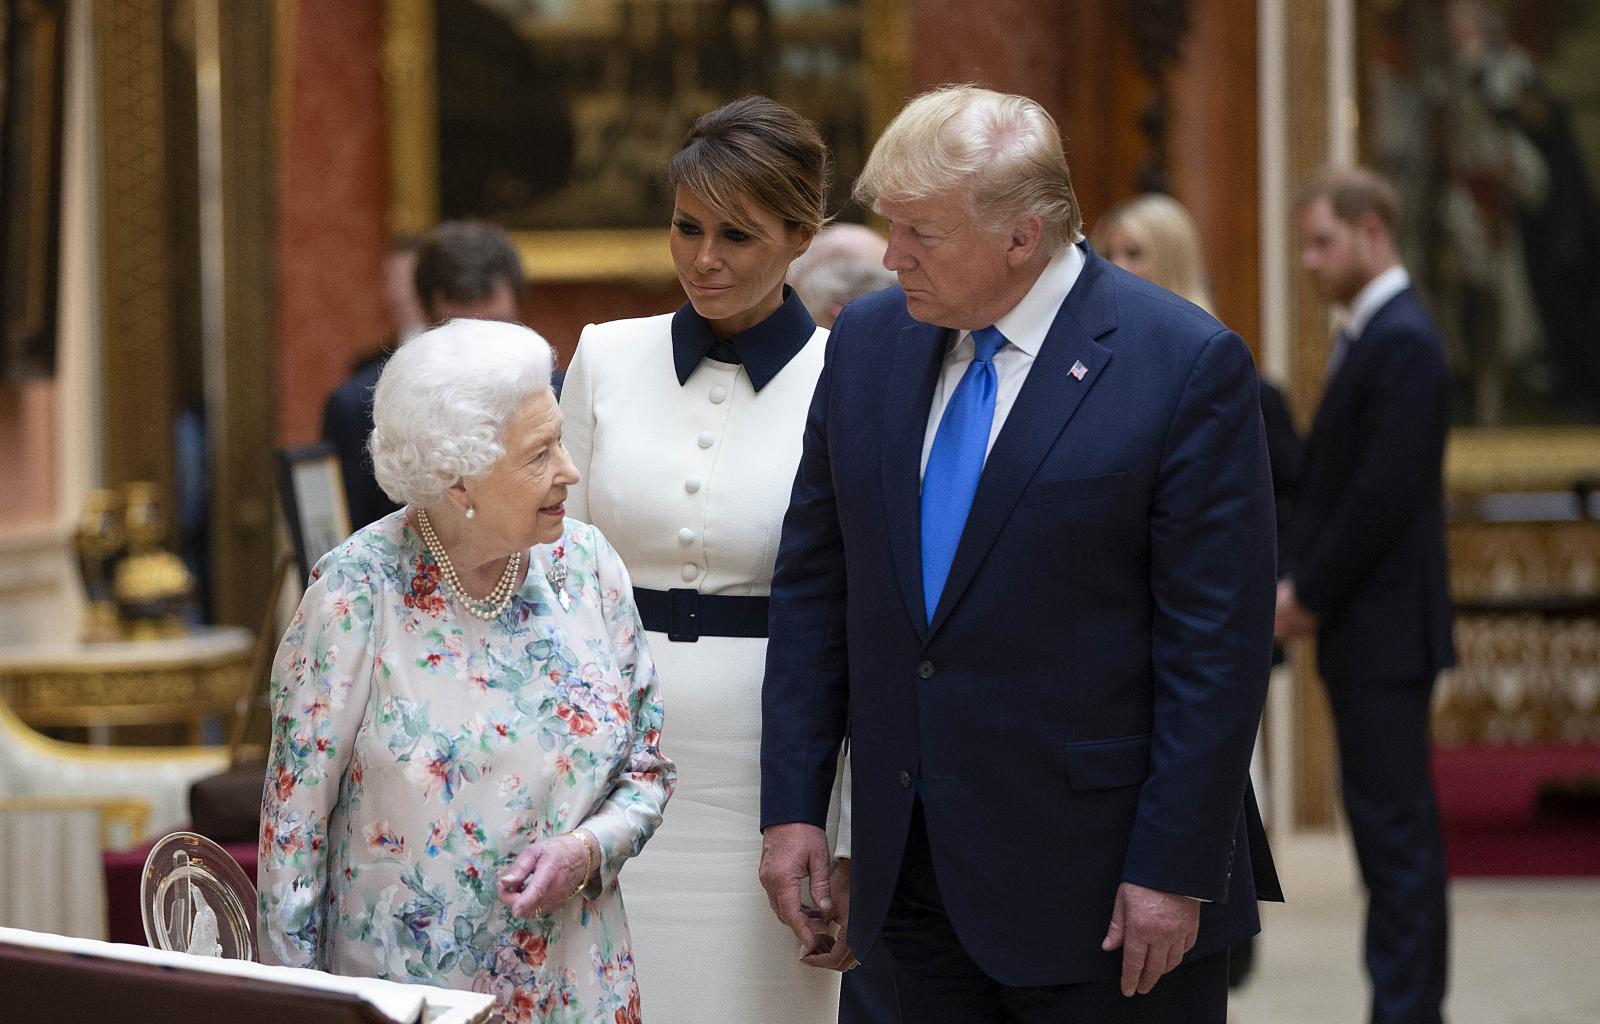 Donald Trump Slammed And Mocked For Fist Bumping Queen Elizabeth!